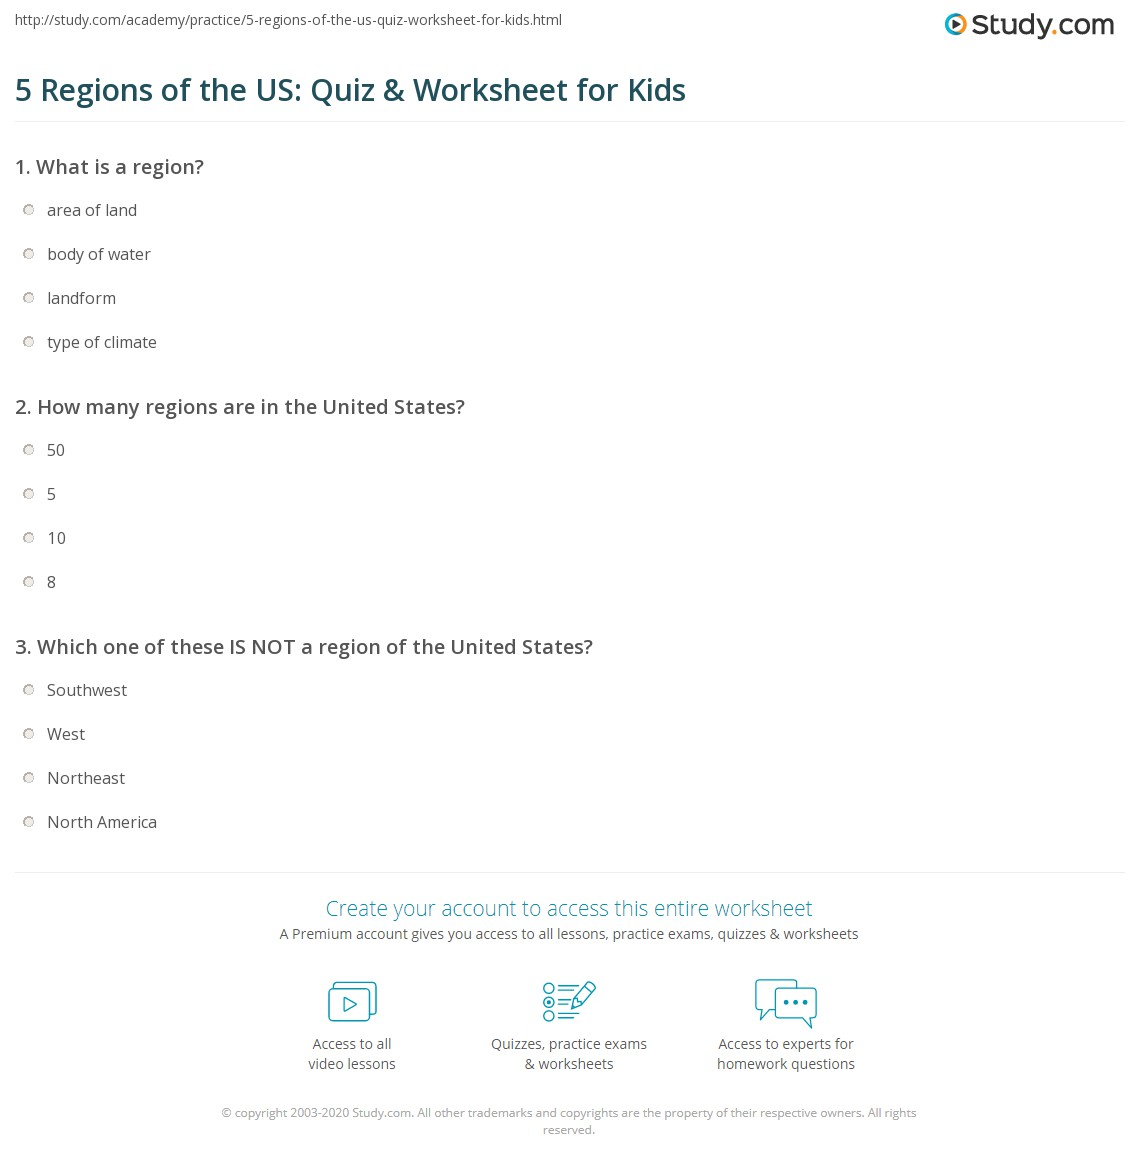 5 Regions of the US Quiz Worksheet for Kids – Regions of the United States Worksheets